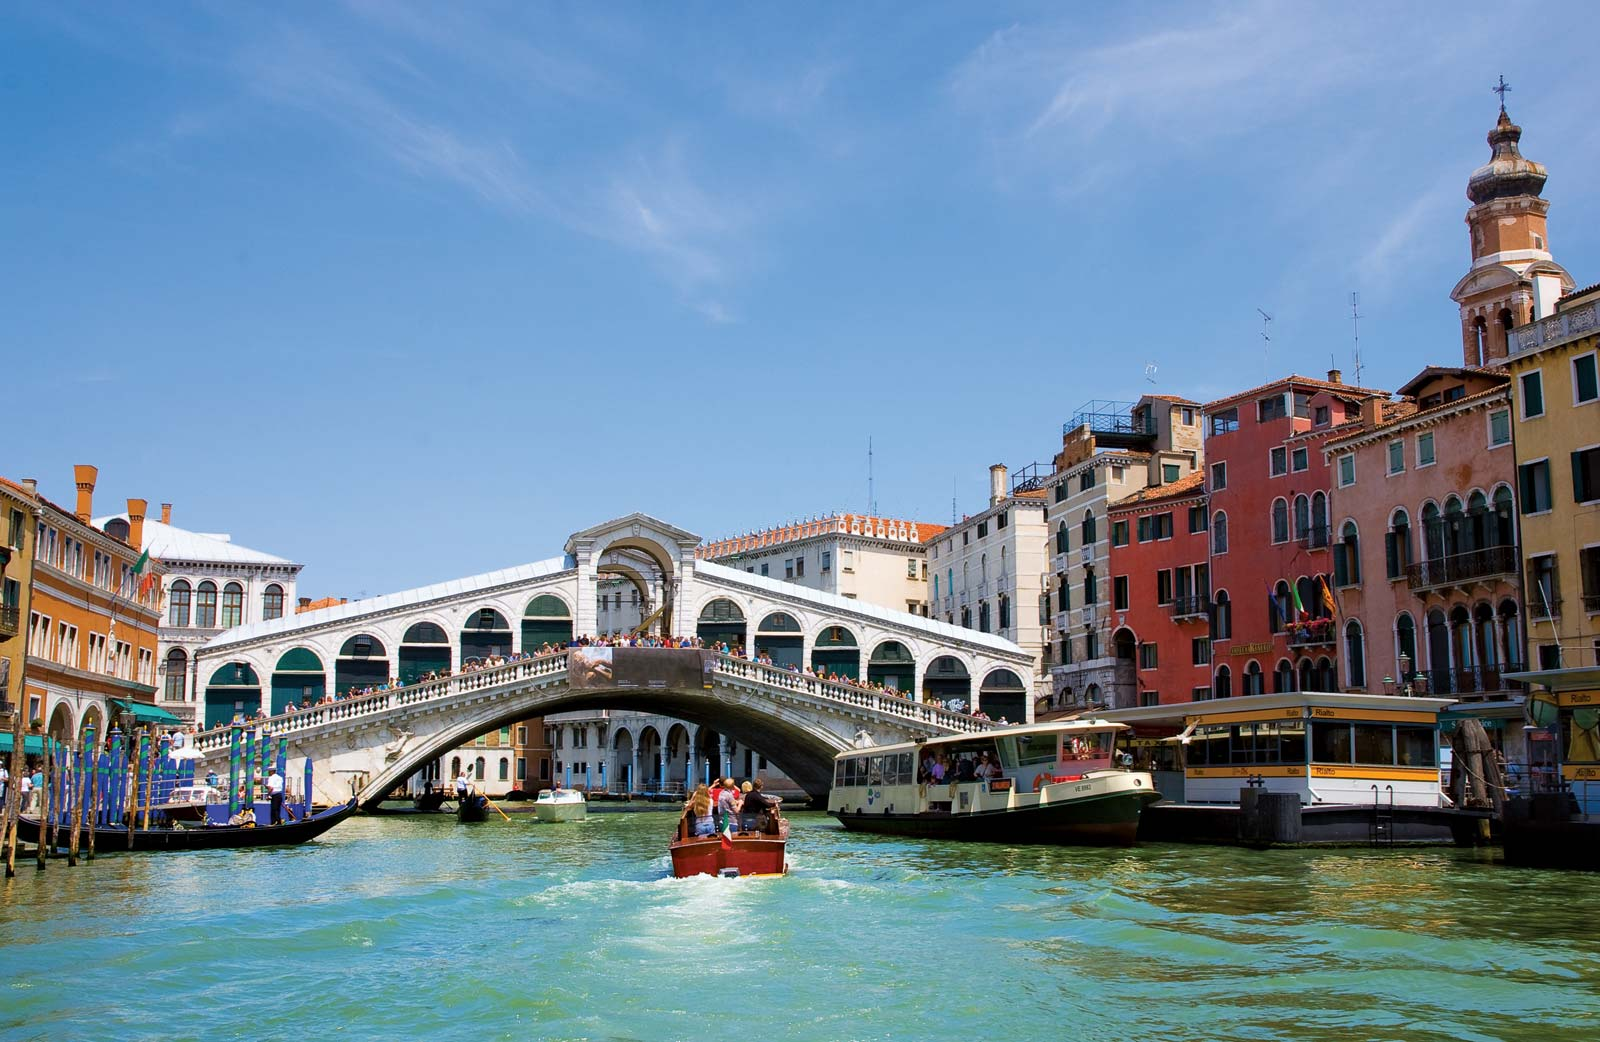 Rialto-Bridge-Grand-Canal-Venice